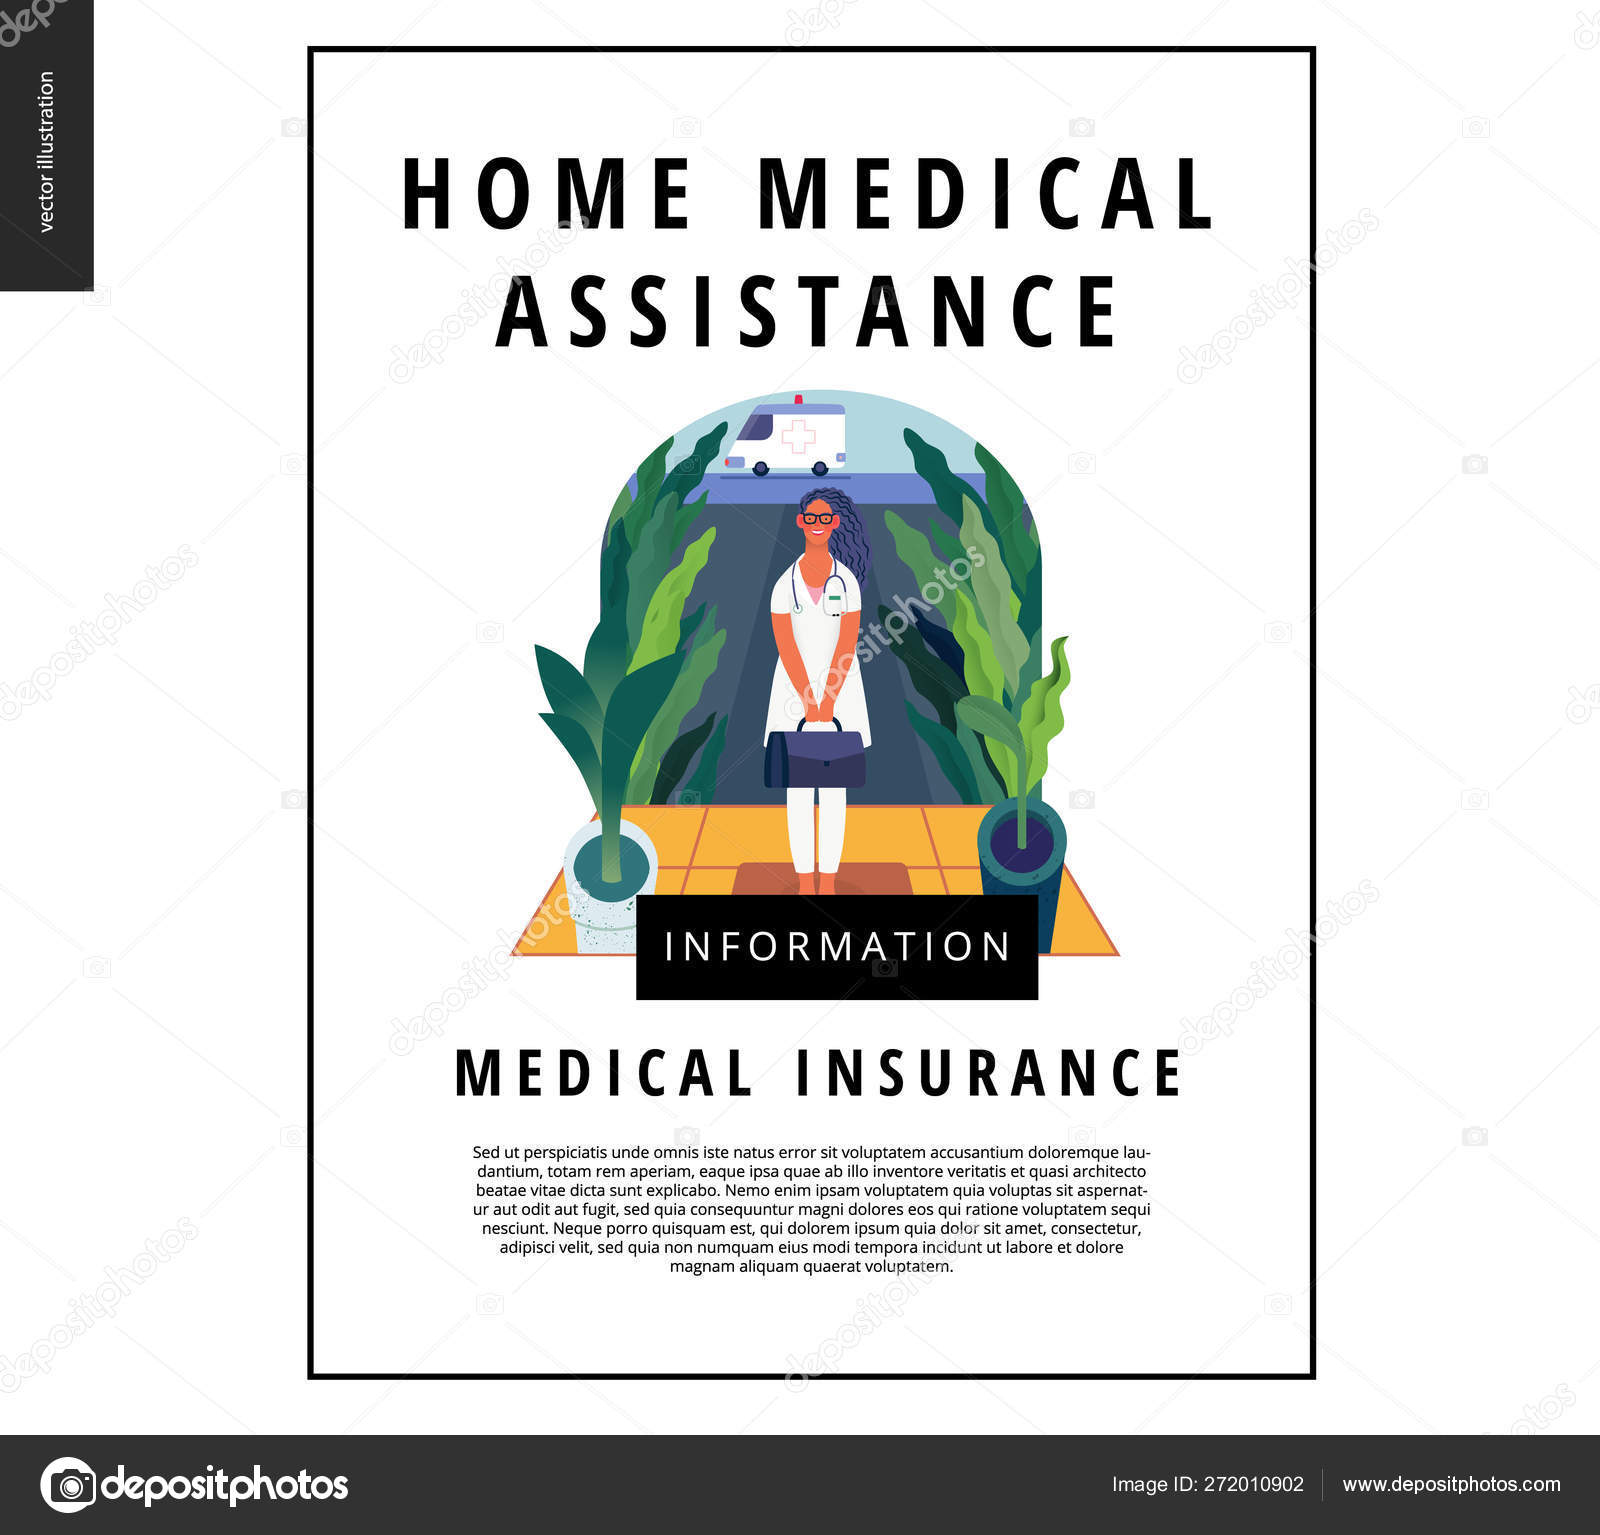 Medical insurance template - home medical assistance — Stock